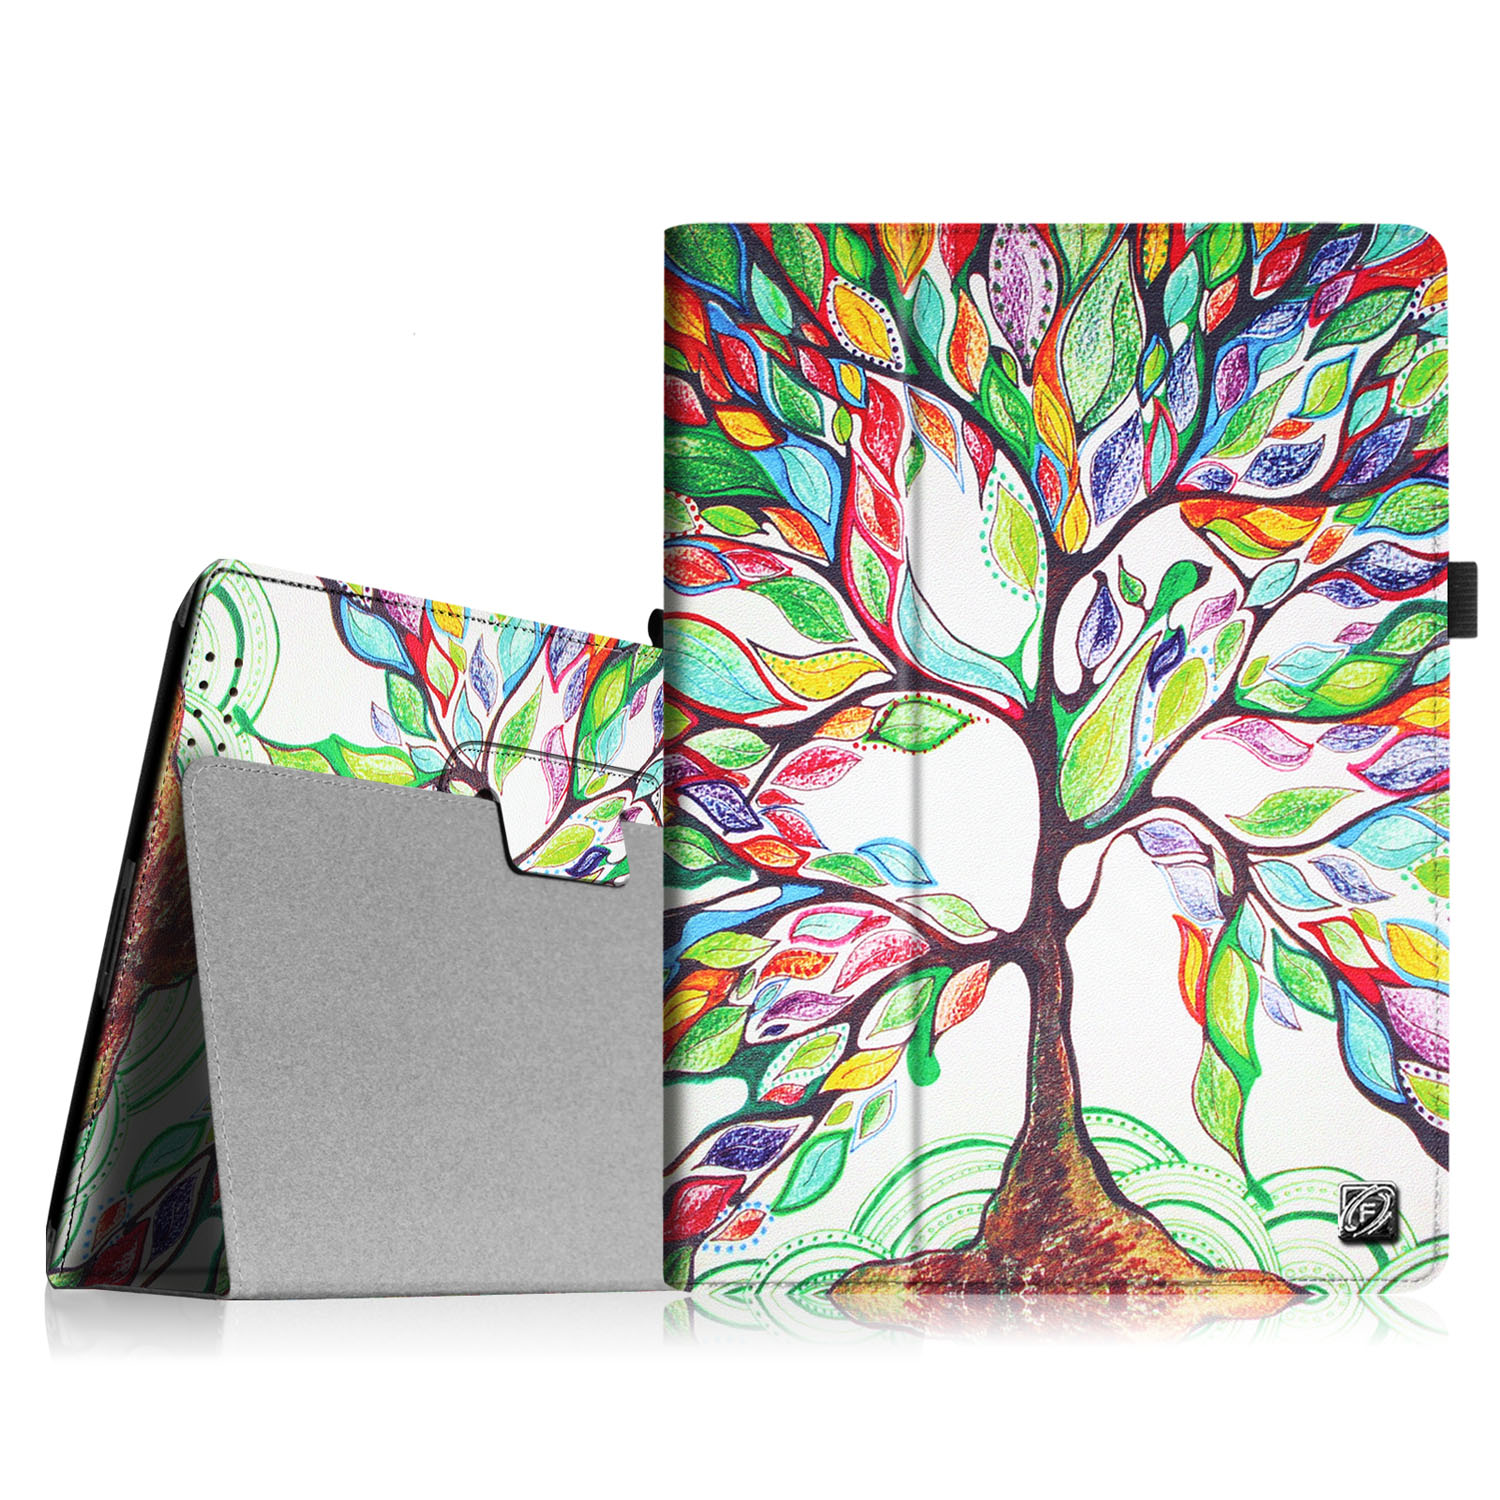 Fintie iPad 2/ iPad 3/ iPad 4 Gen Folio Case - PU Leather Cover with Auto Wake/ Sleep Feature, Love Tree